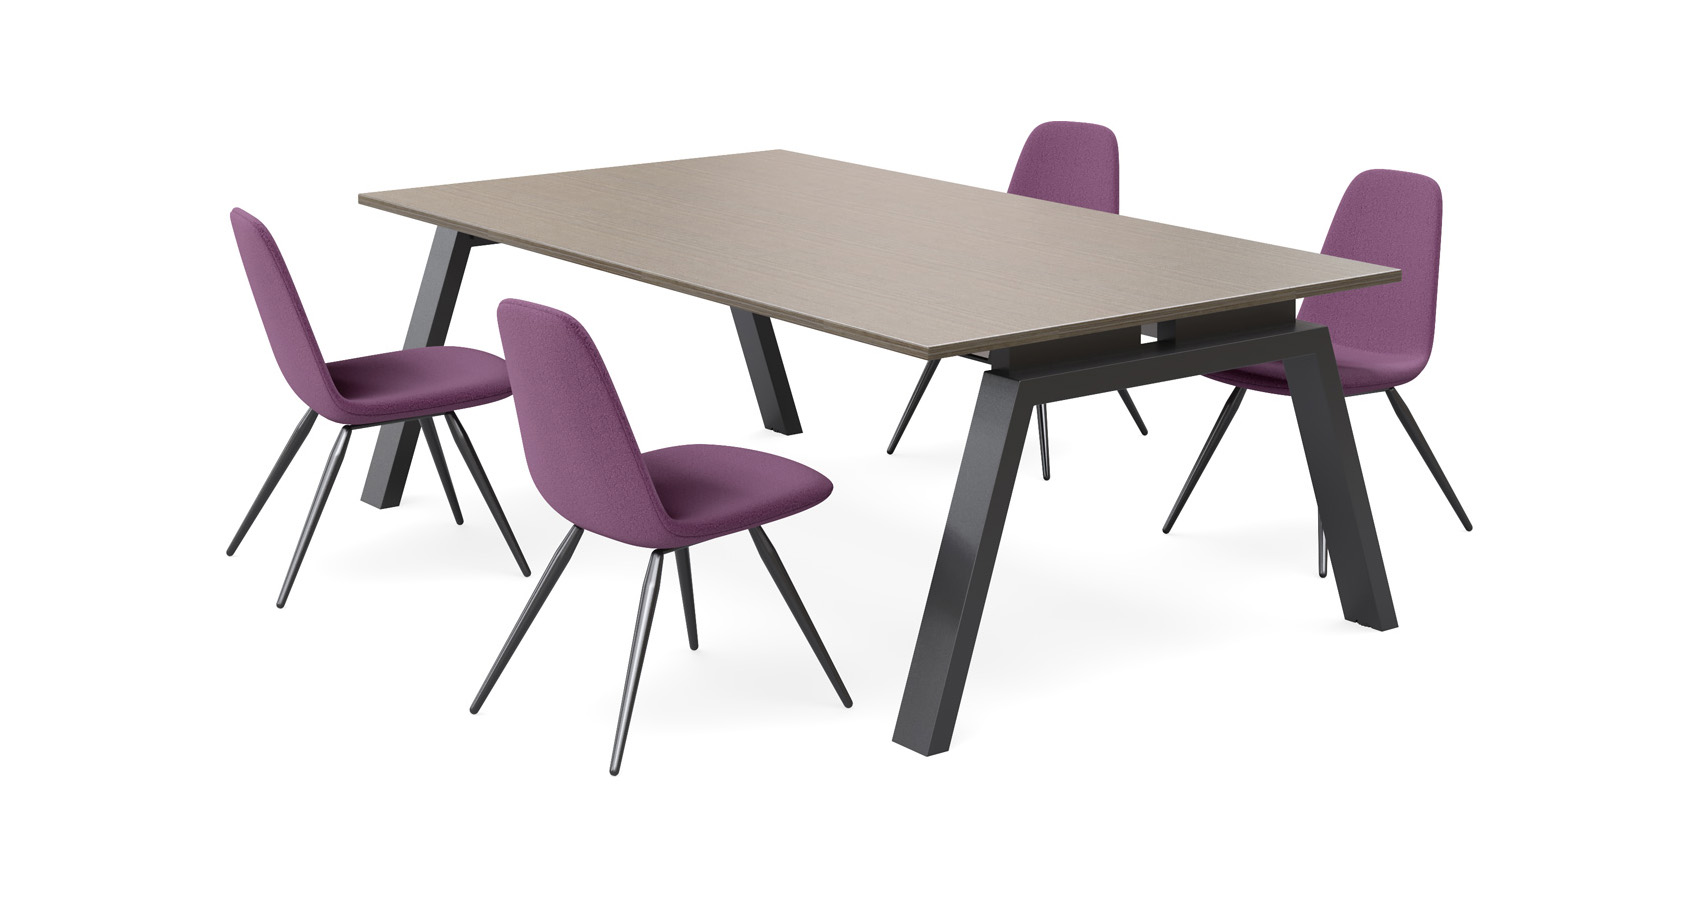 Keywork Meeting Table with Tang chairs